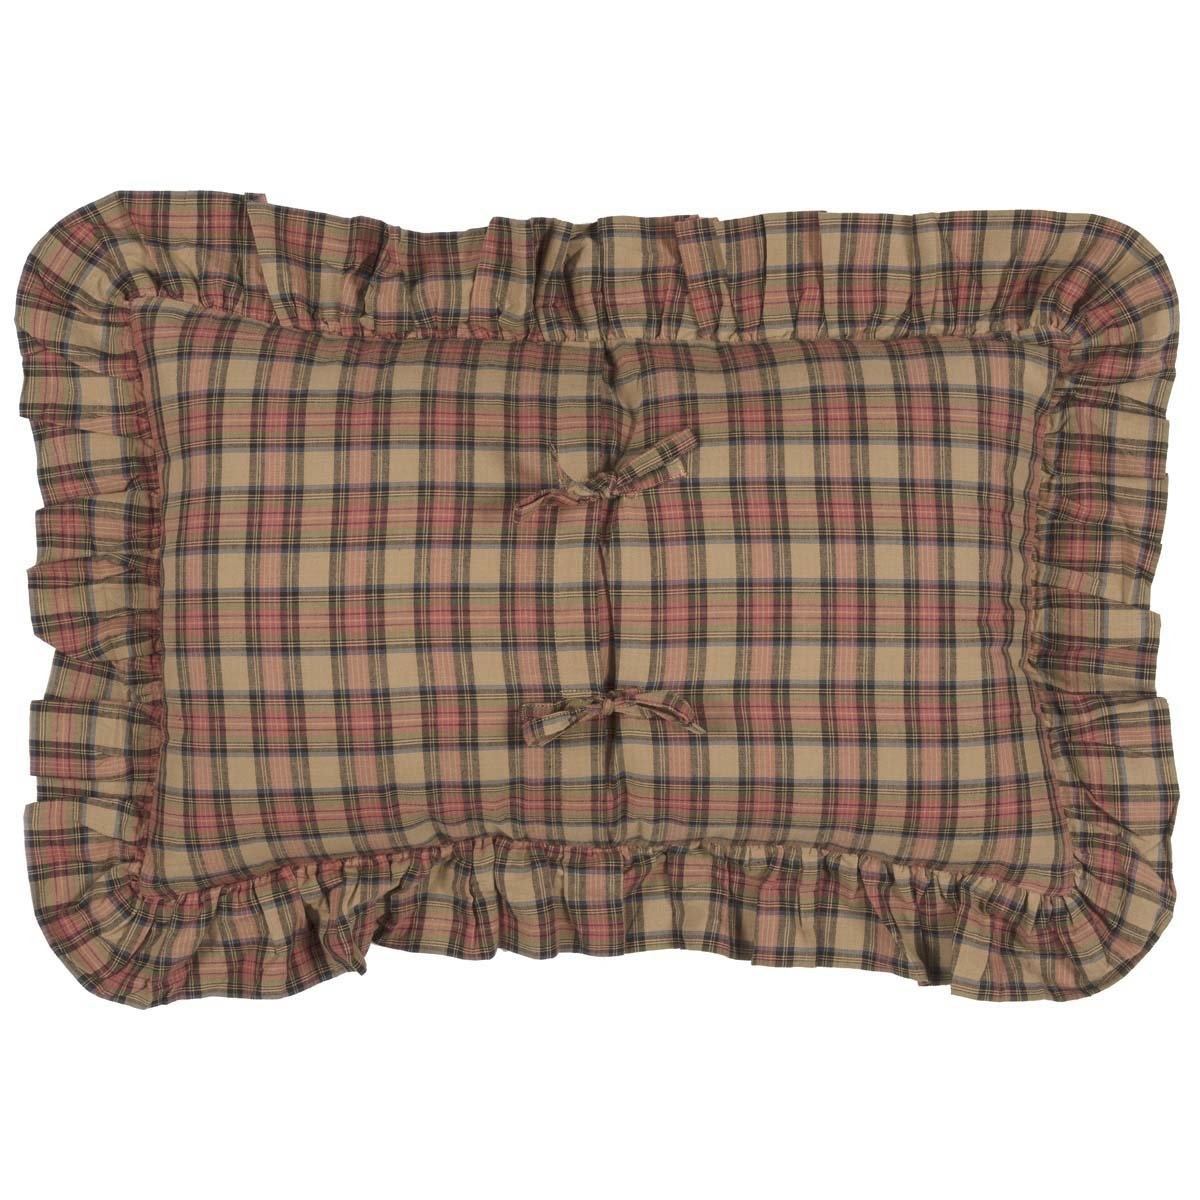 Crosswoods Fabric Pillow.